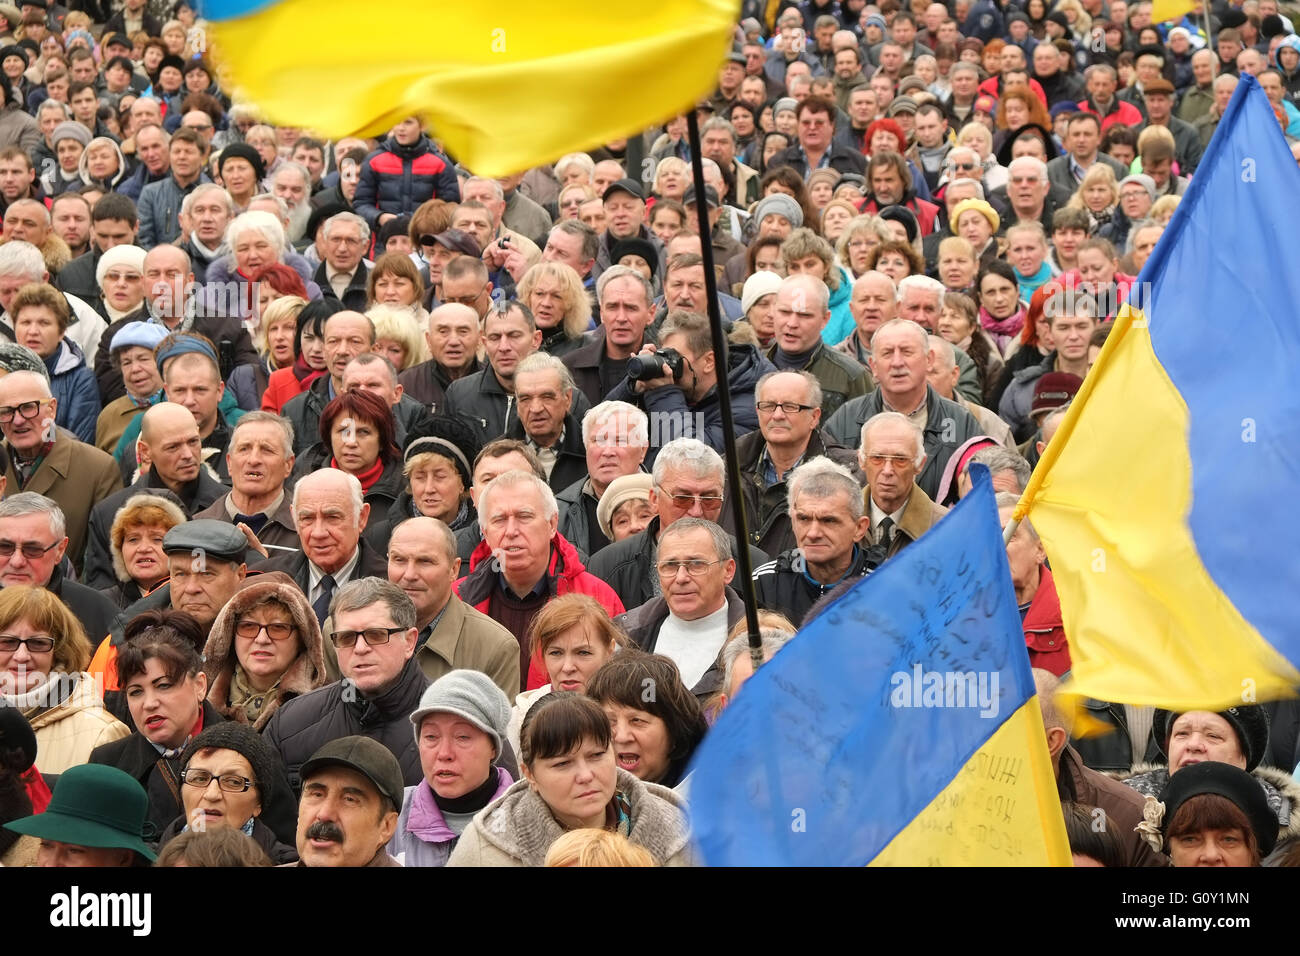 Kryvyi Rih, Ukraine - November 22, 2015: Crowd of people with Ukrainian flags at the meeting against falsification - Stock Image